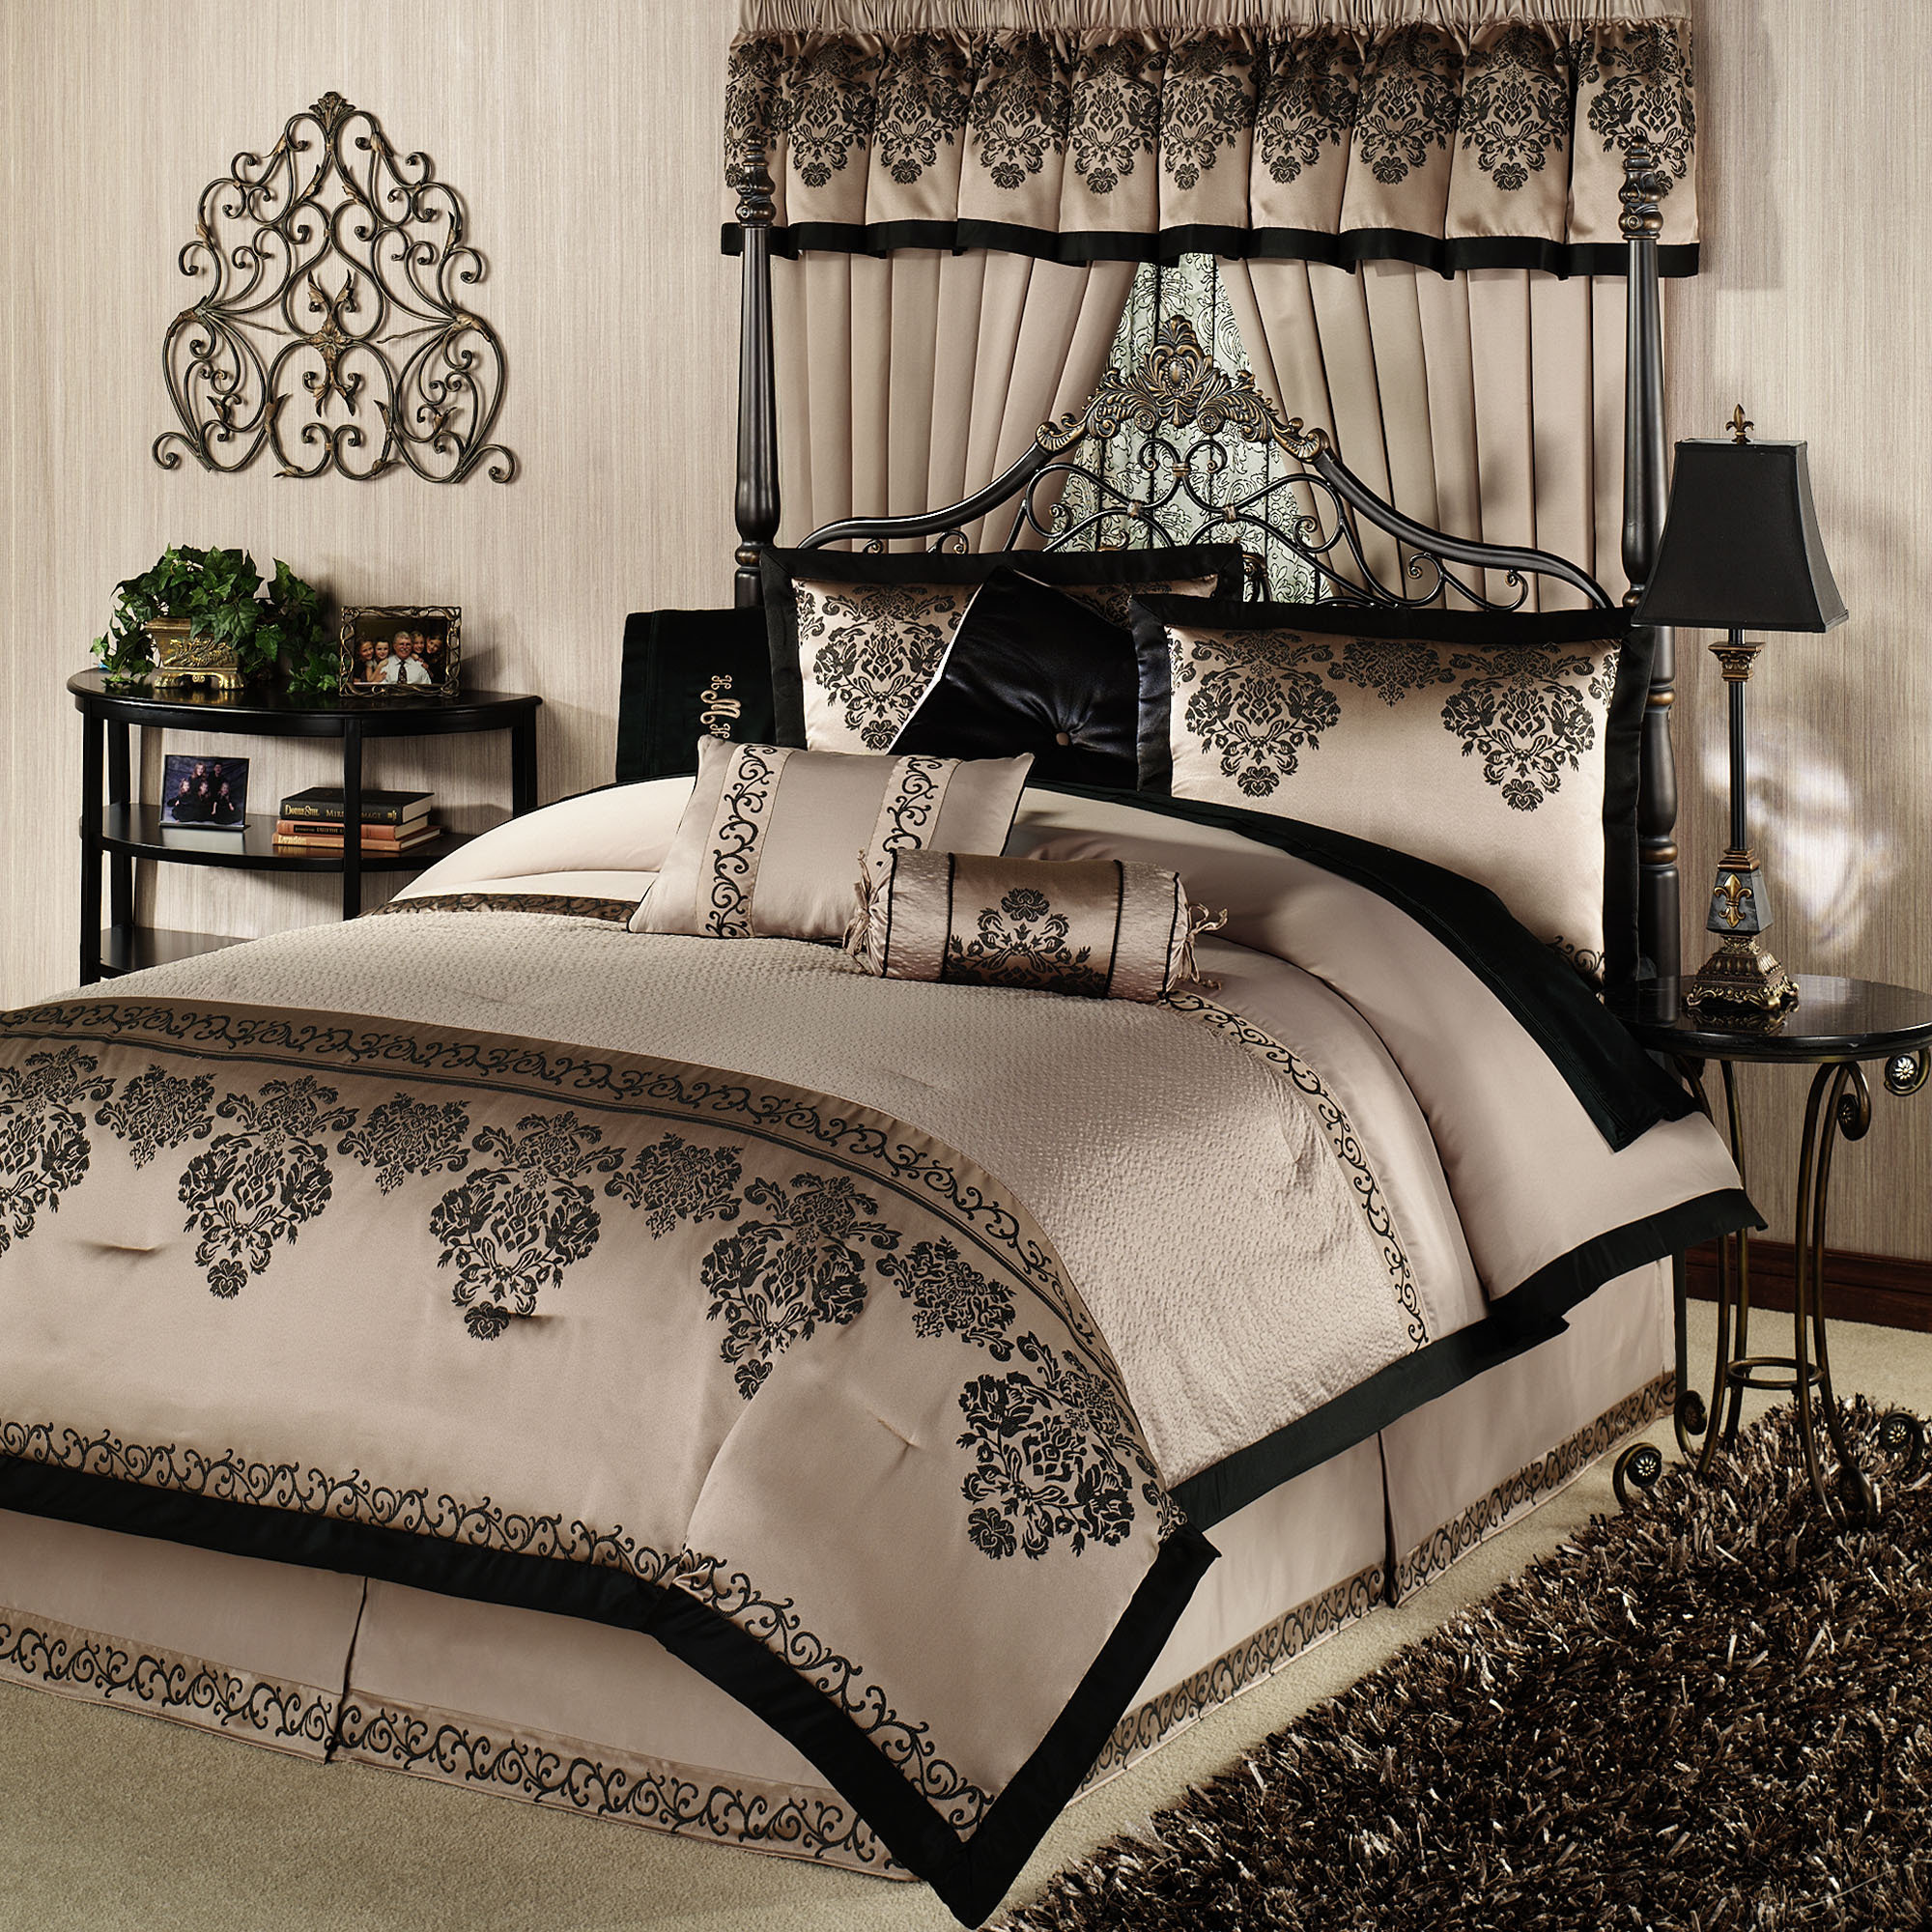 michael amini bedding king luxury comforter sets luxury comforter sets